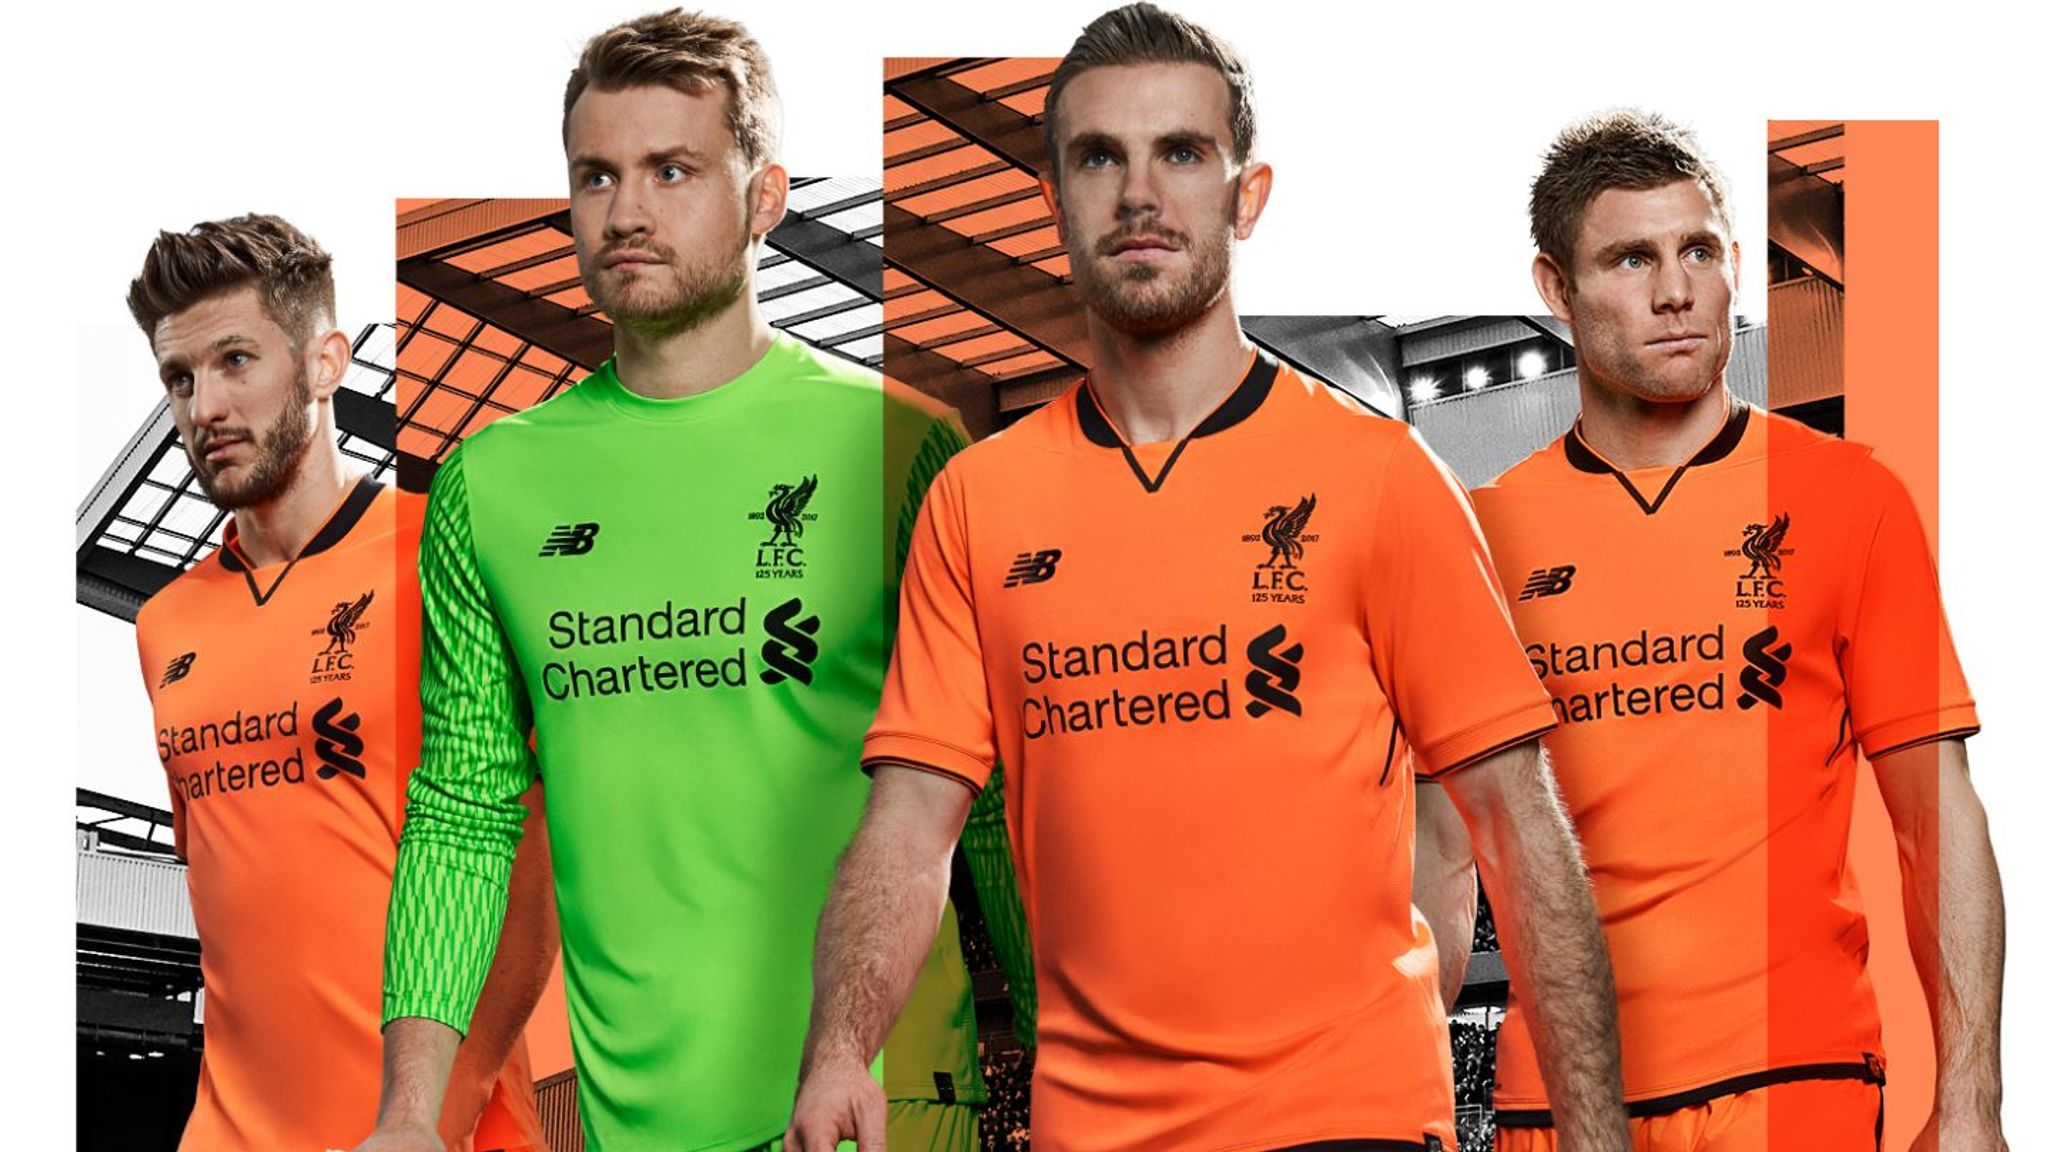 77f51ec61c2 New football kits: Premier League strips for the 2017/18 season | Football  News | Sky Sports